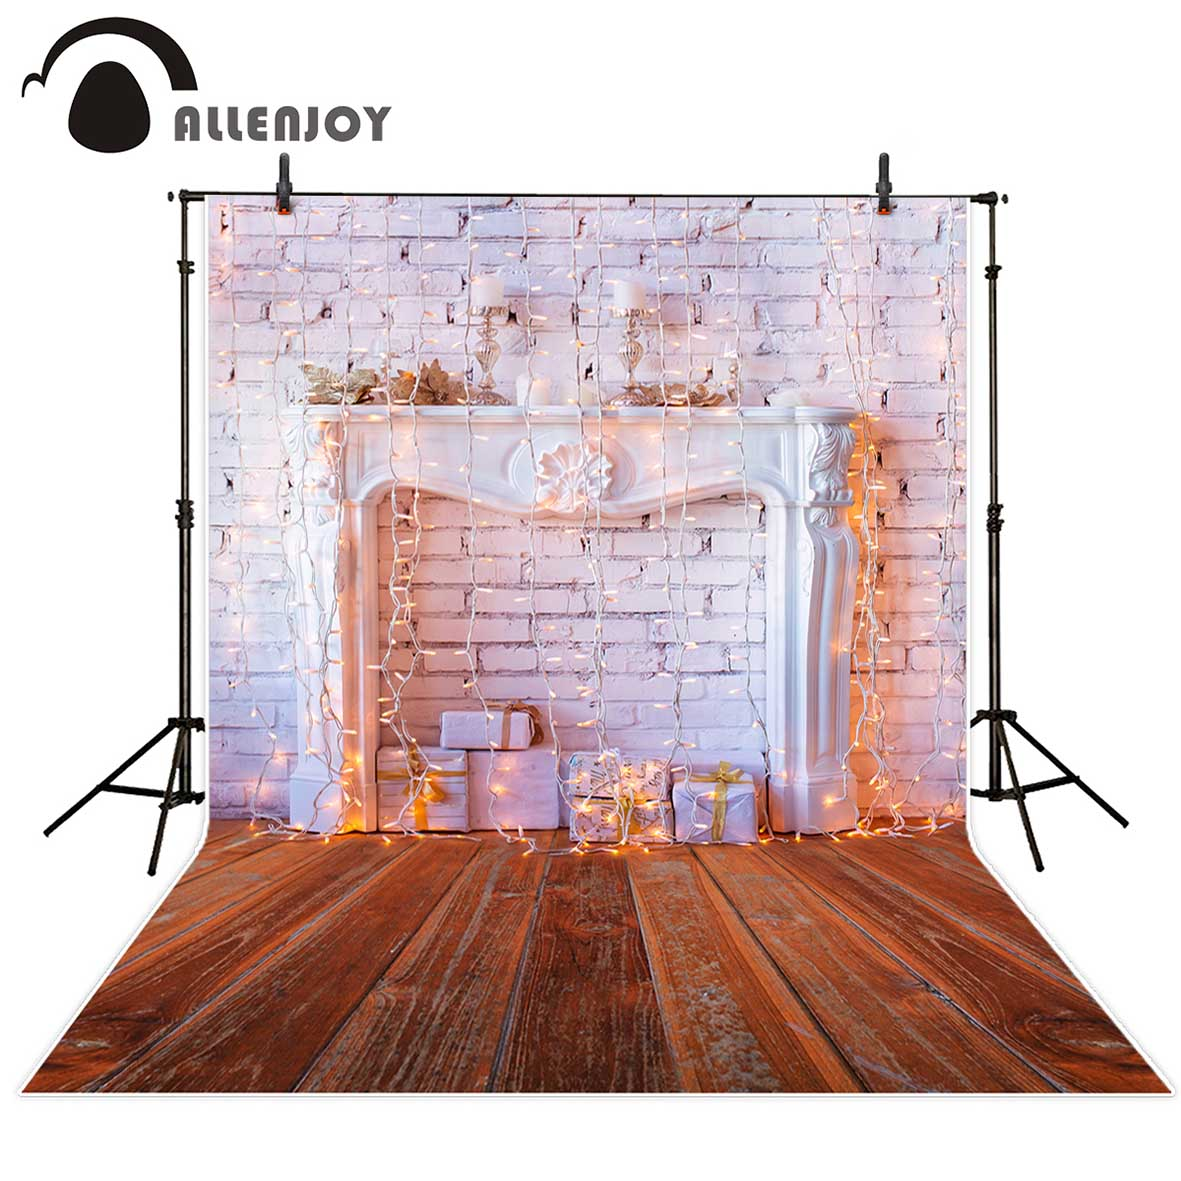 Allenjoy christmas photography backdrops Christmas background gifts white brick wall wooden floor bulbs table for baby for kids mva genuine leather men bag business briefcase messenger handbags men crossbody bags men s travel laptop bag shoulder tote bags